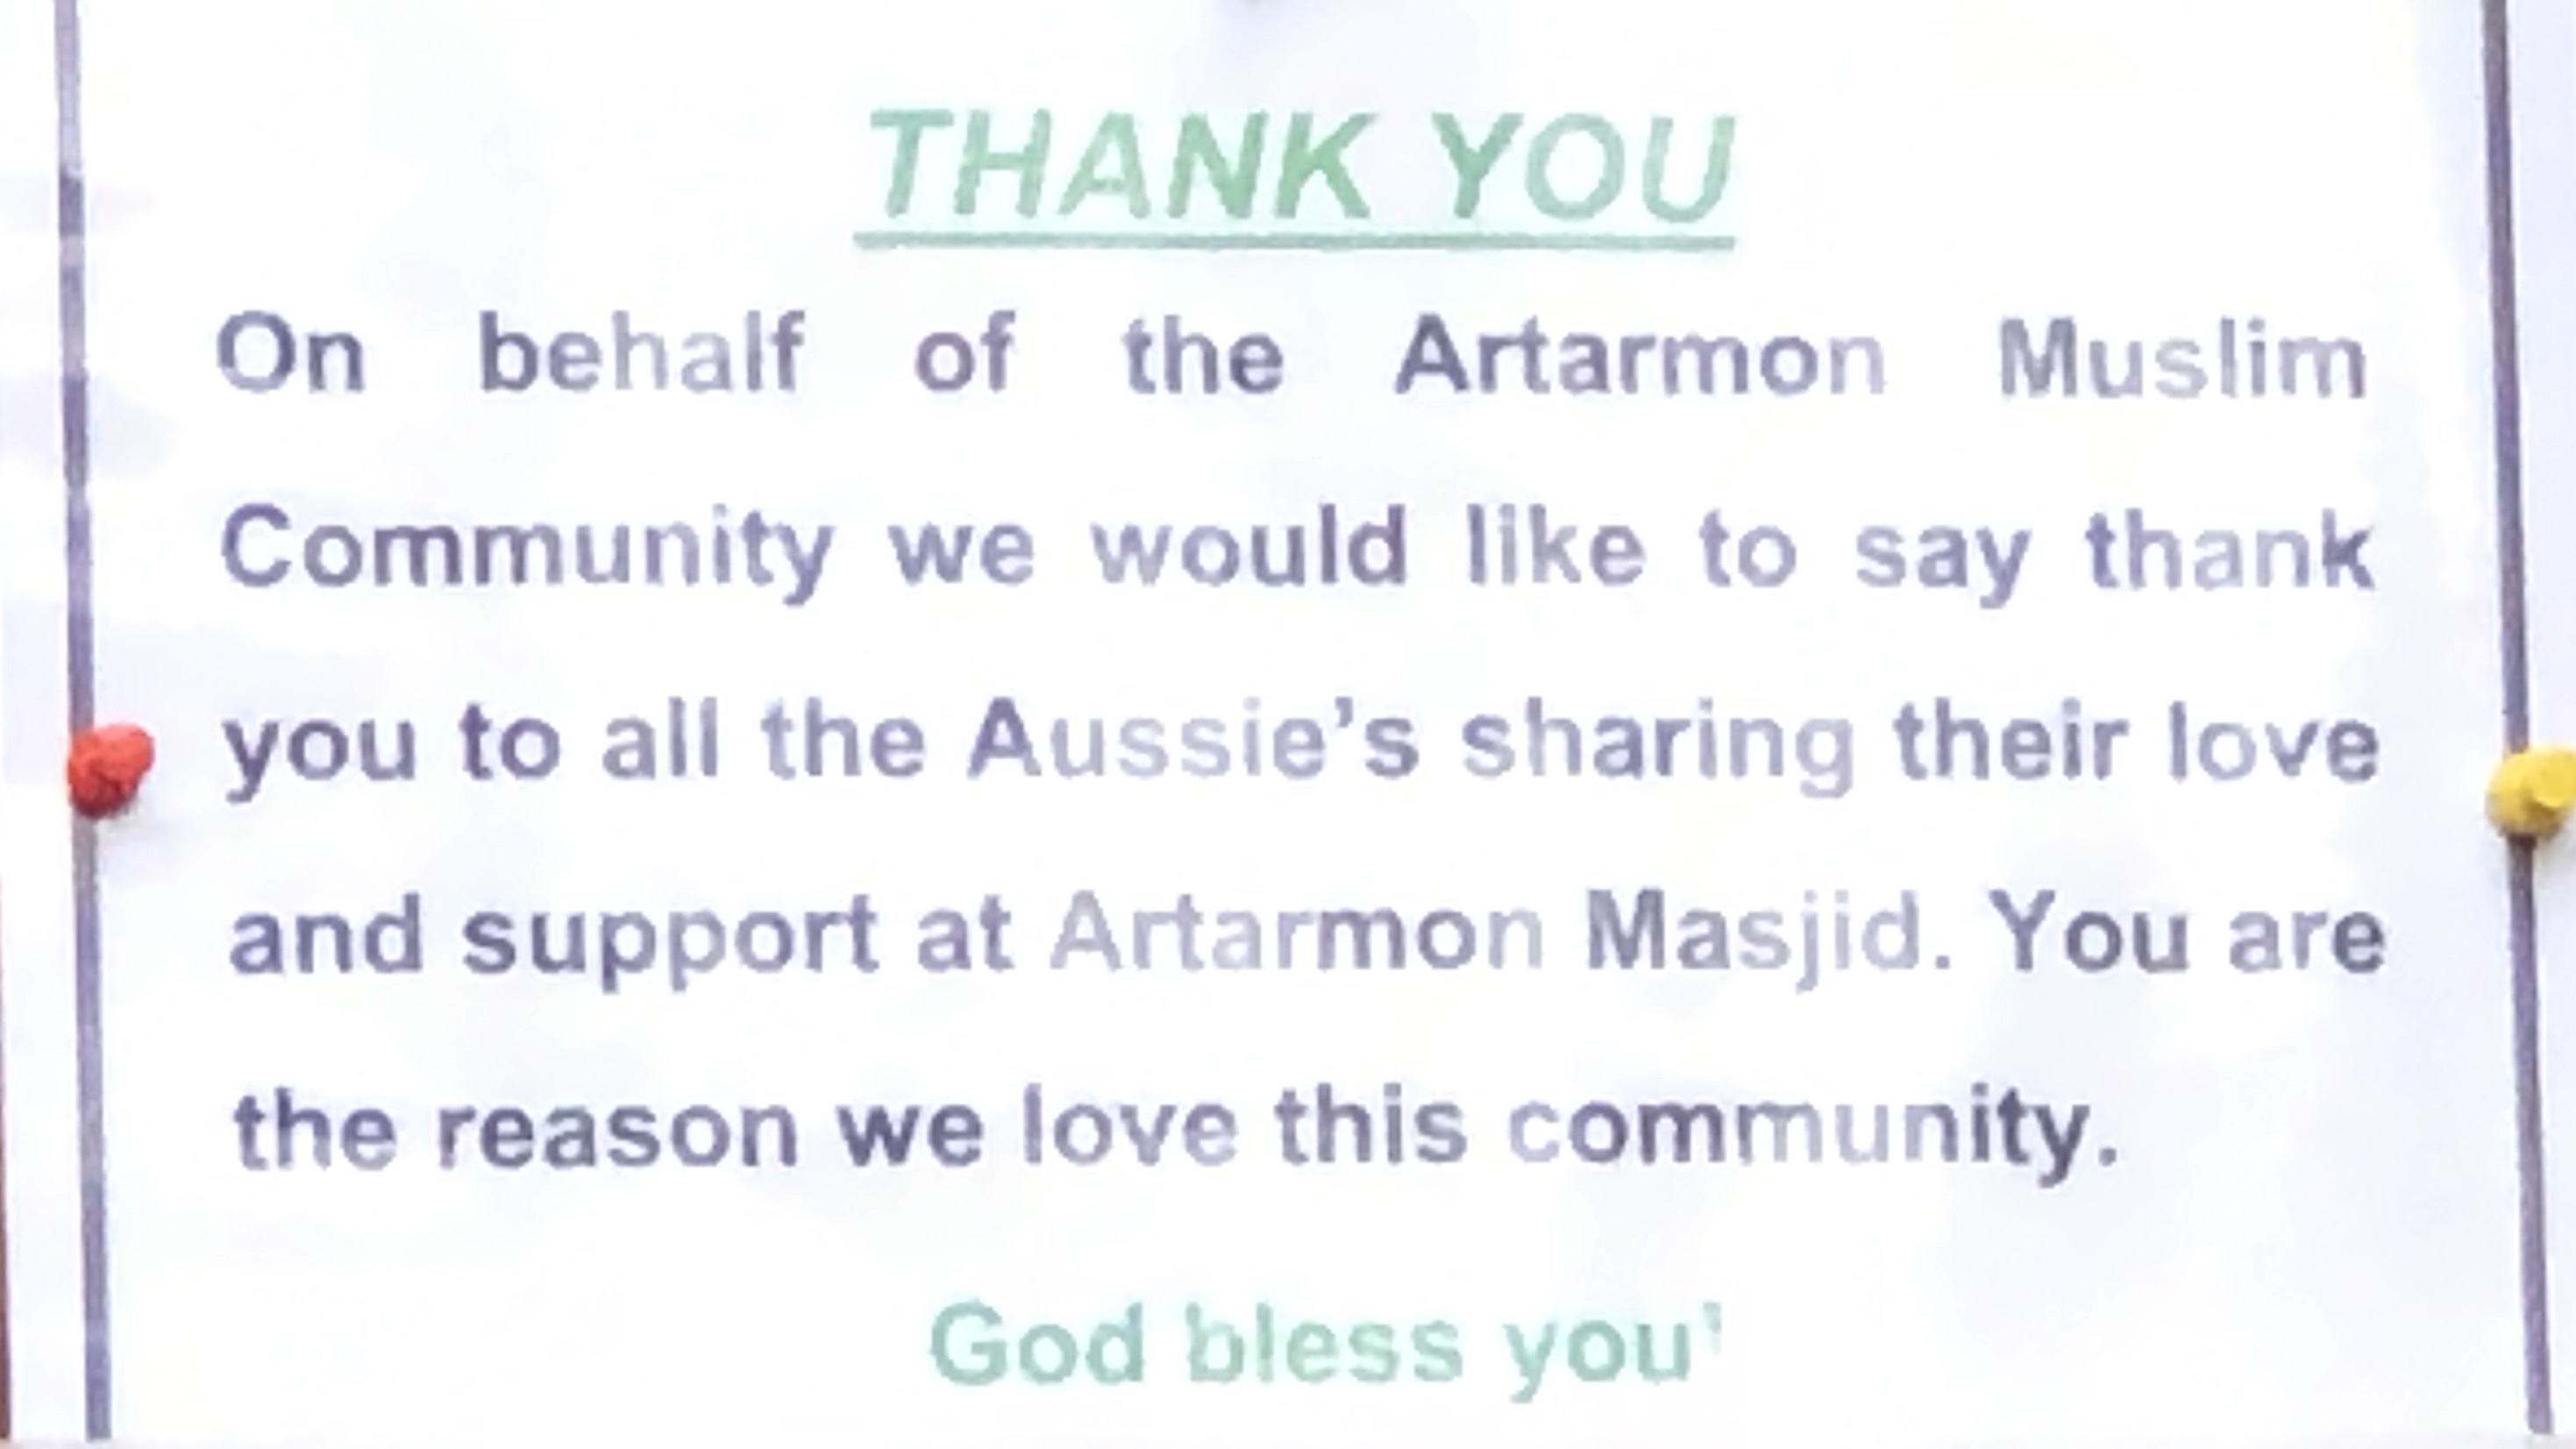 A message from our friends at Artarmon Masjid